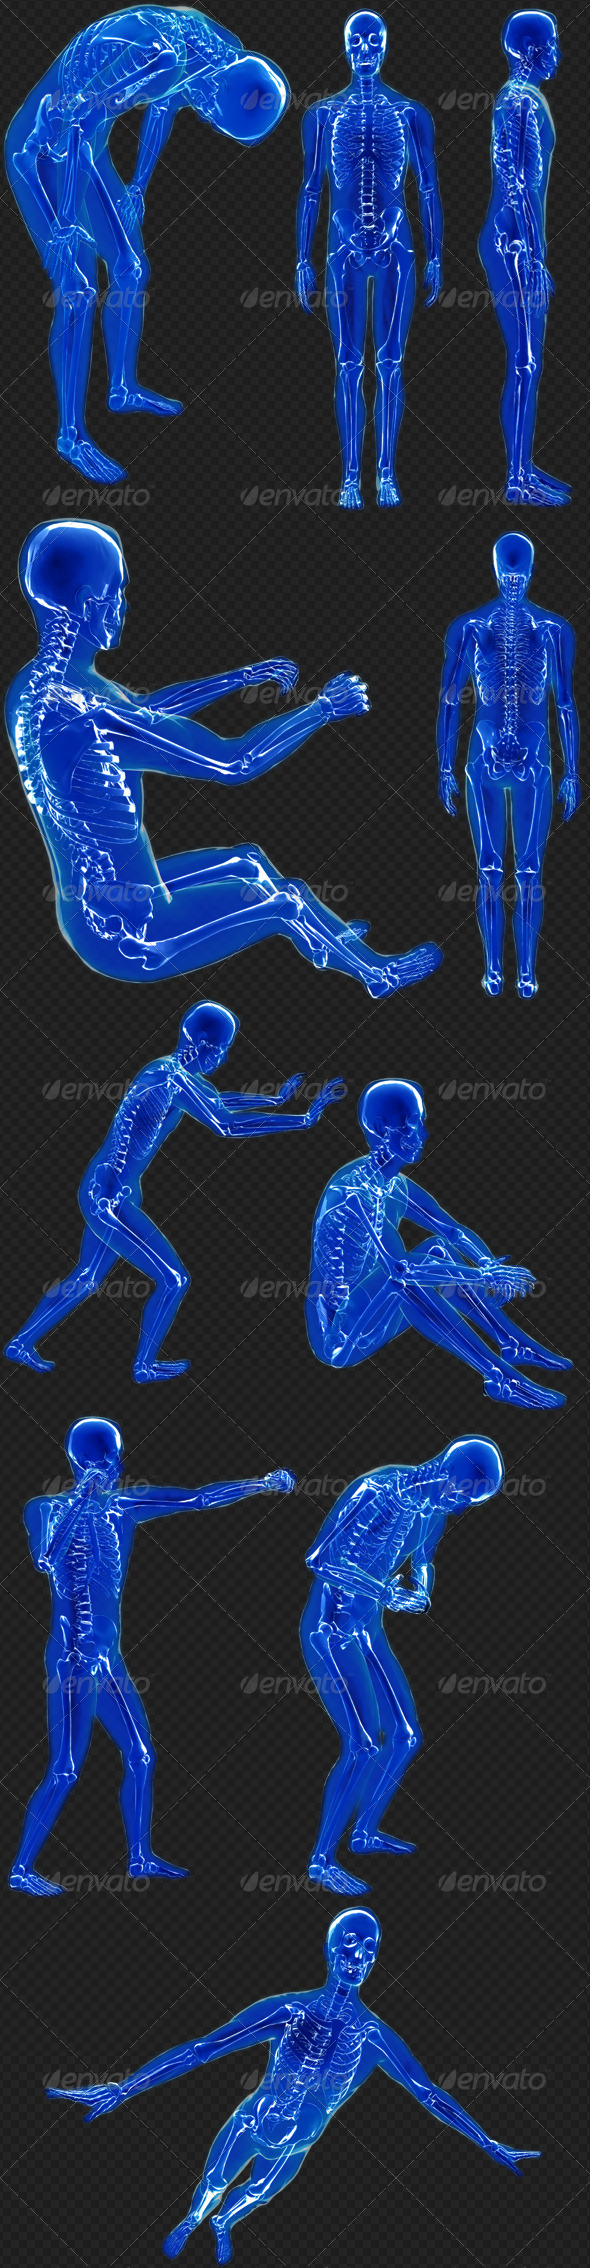 GraphicRiver Human X-Ray 10 Poses Pack 7973042